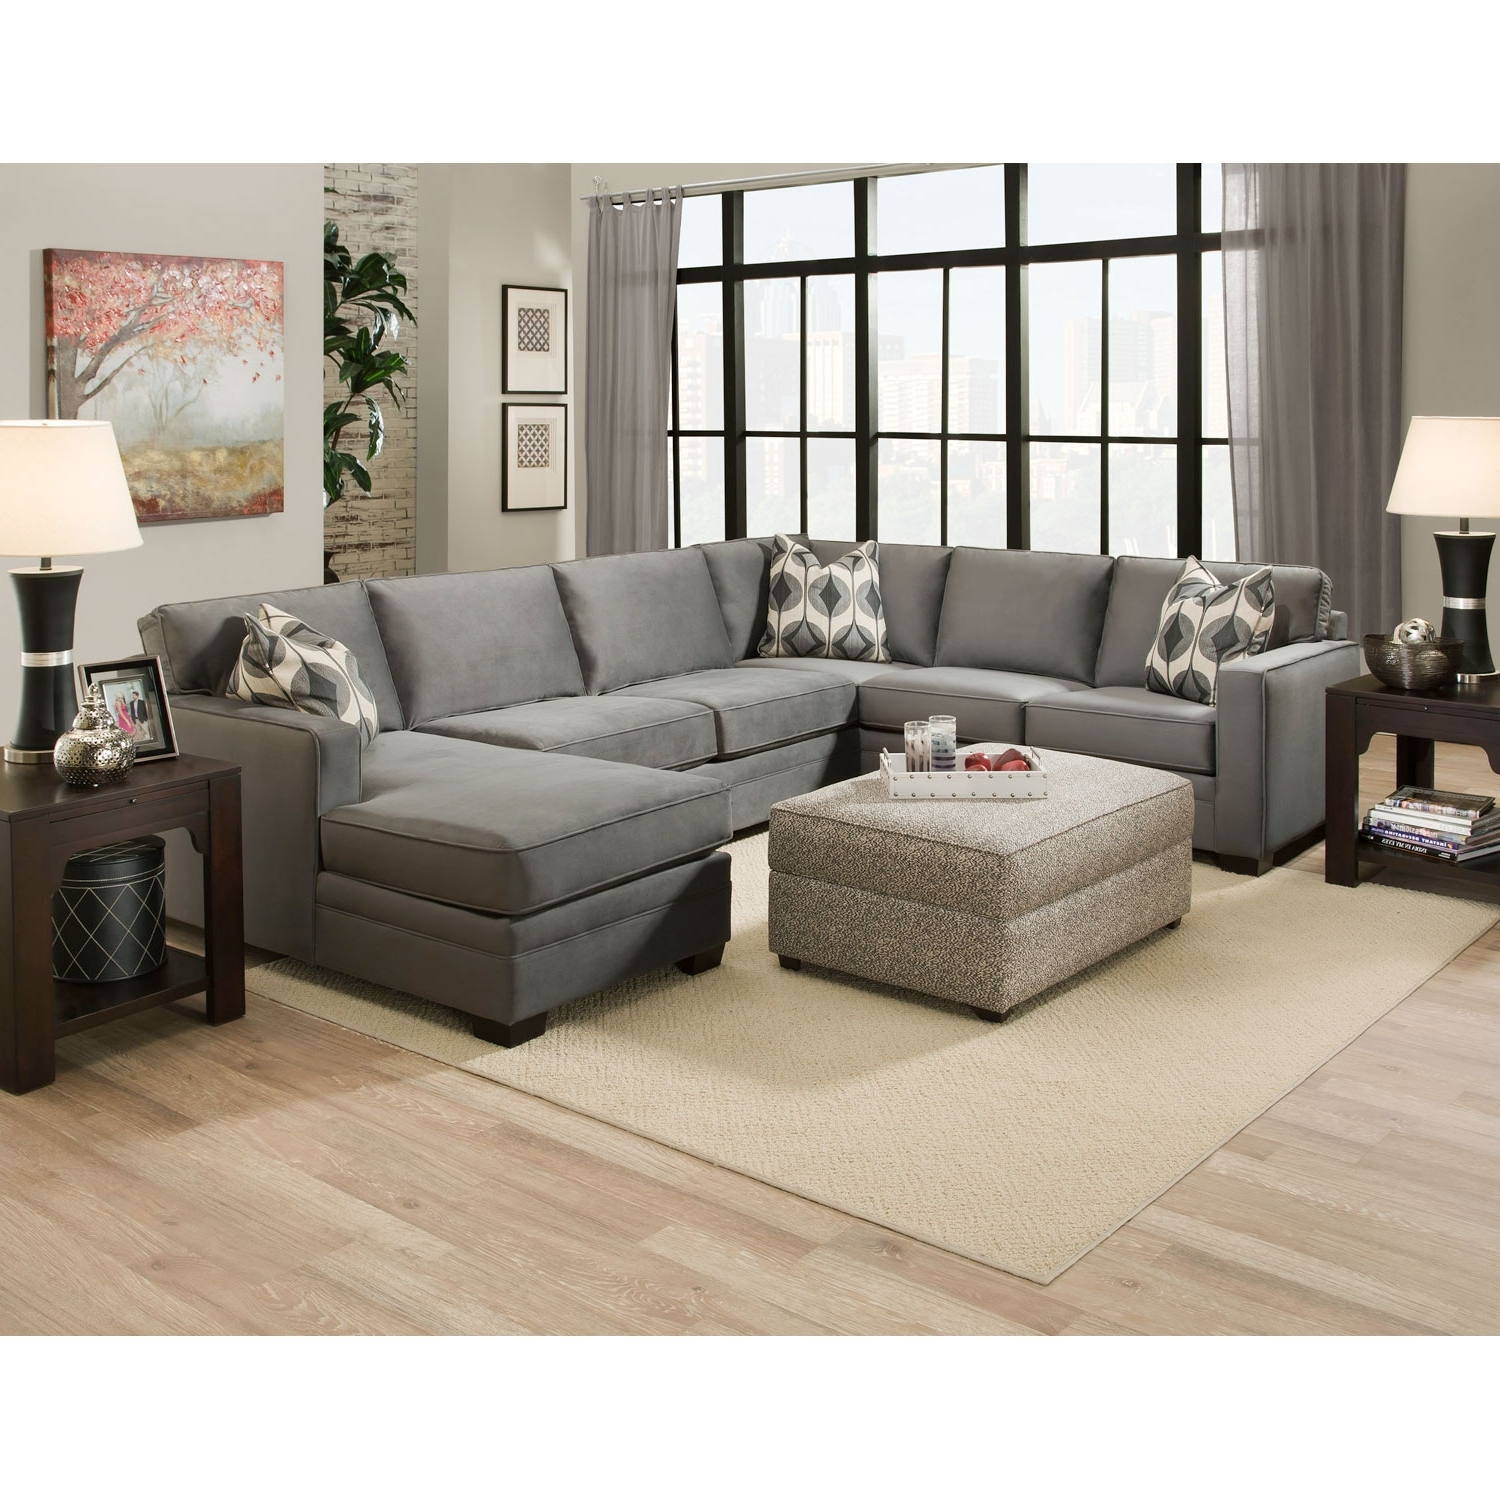 Gray U Shaped Sectionals Inside Recent Gray Extra Large U Shaped Sectional Sofa With Chaise And Accent (View 11 of 15)